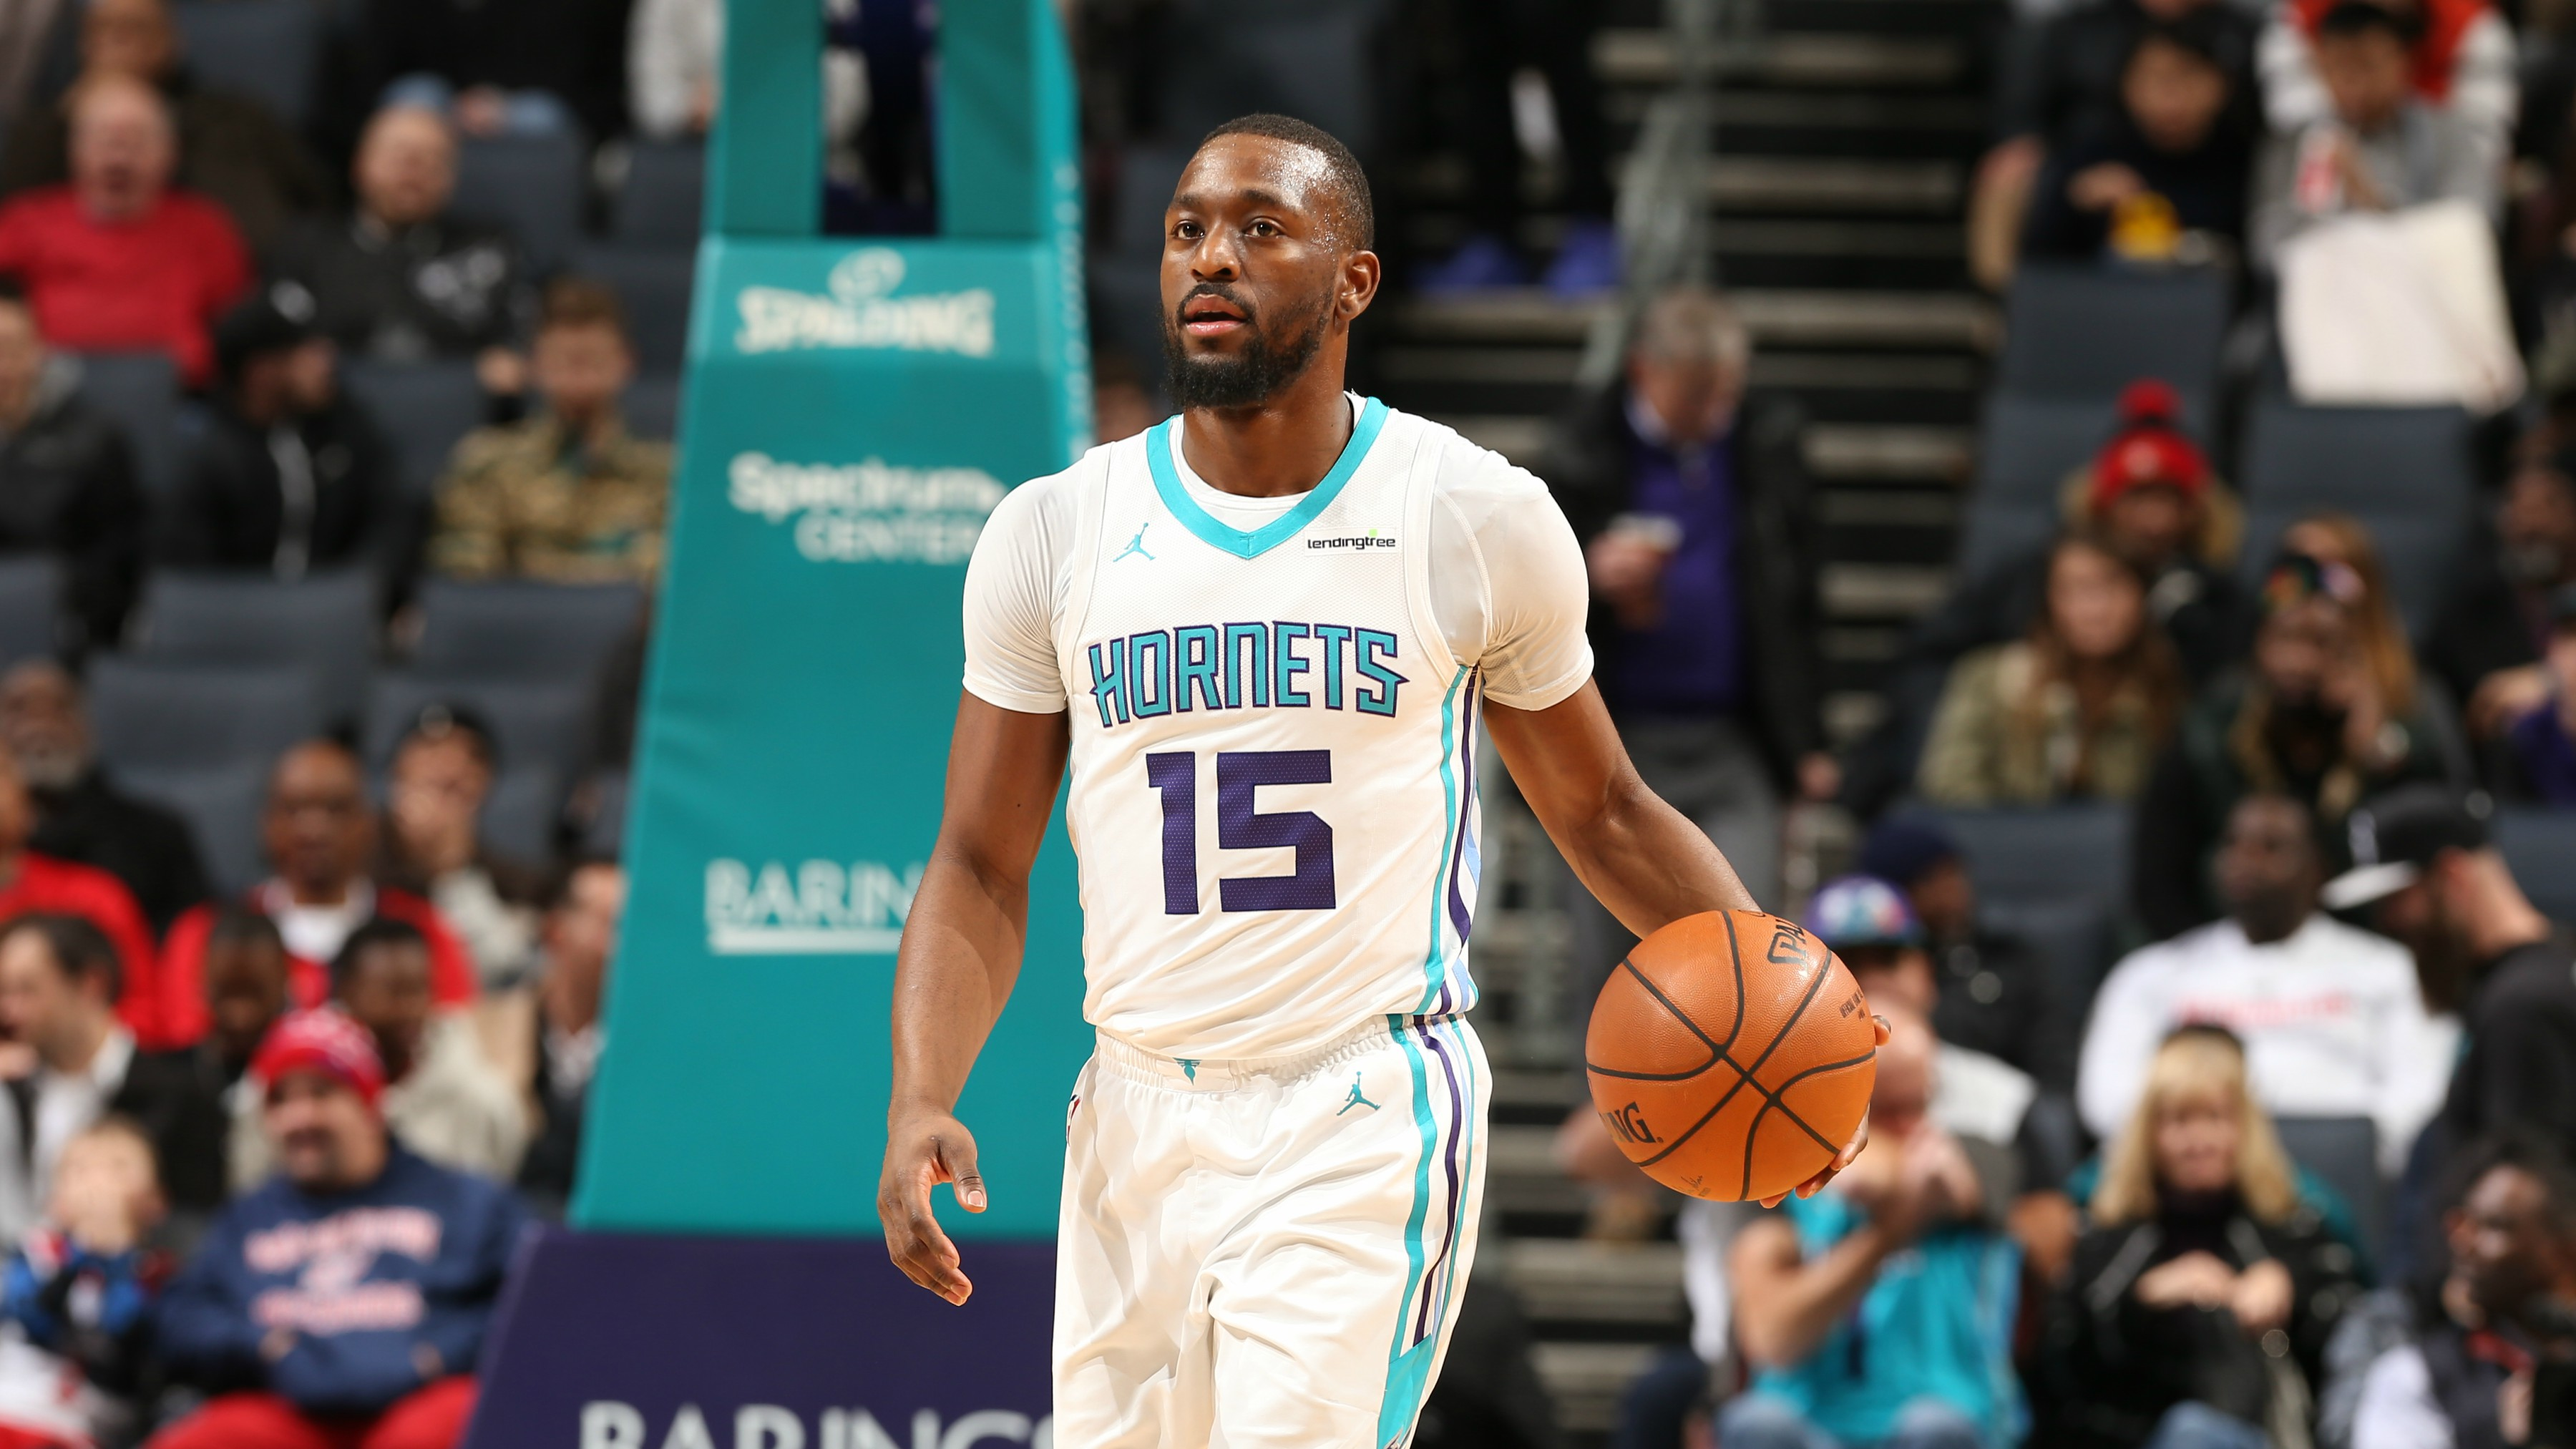 The Hornets are reportedly open to trading star point guard Kemba Walker.